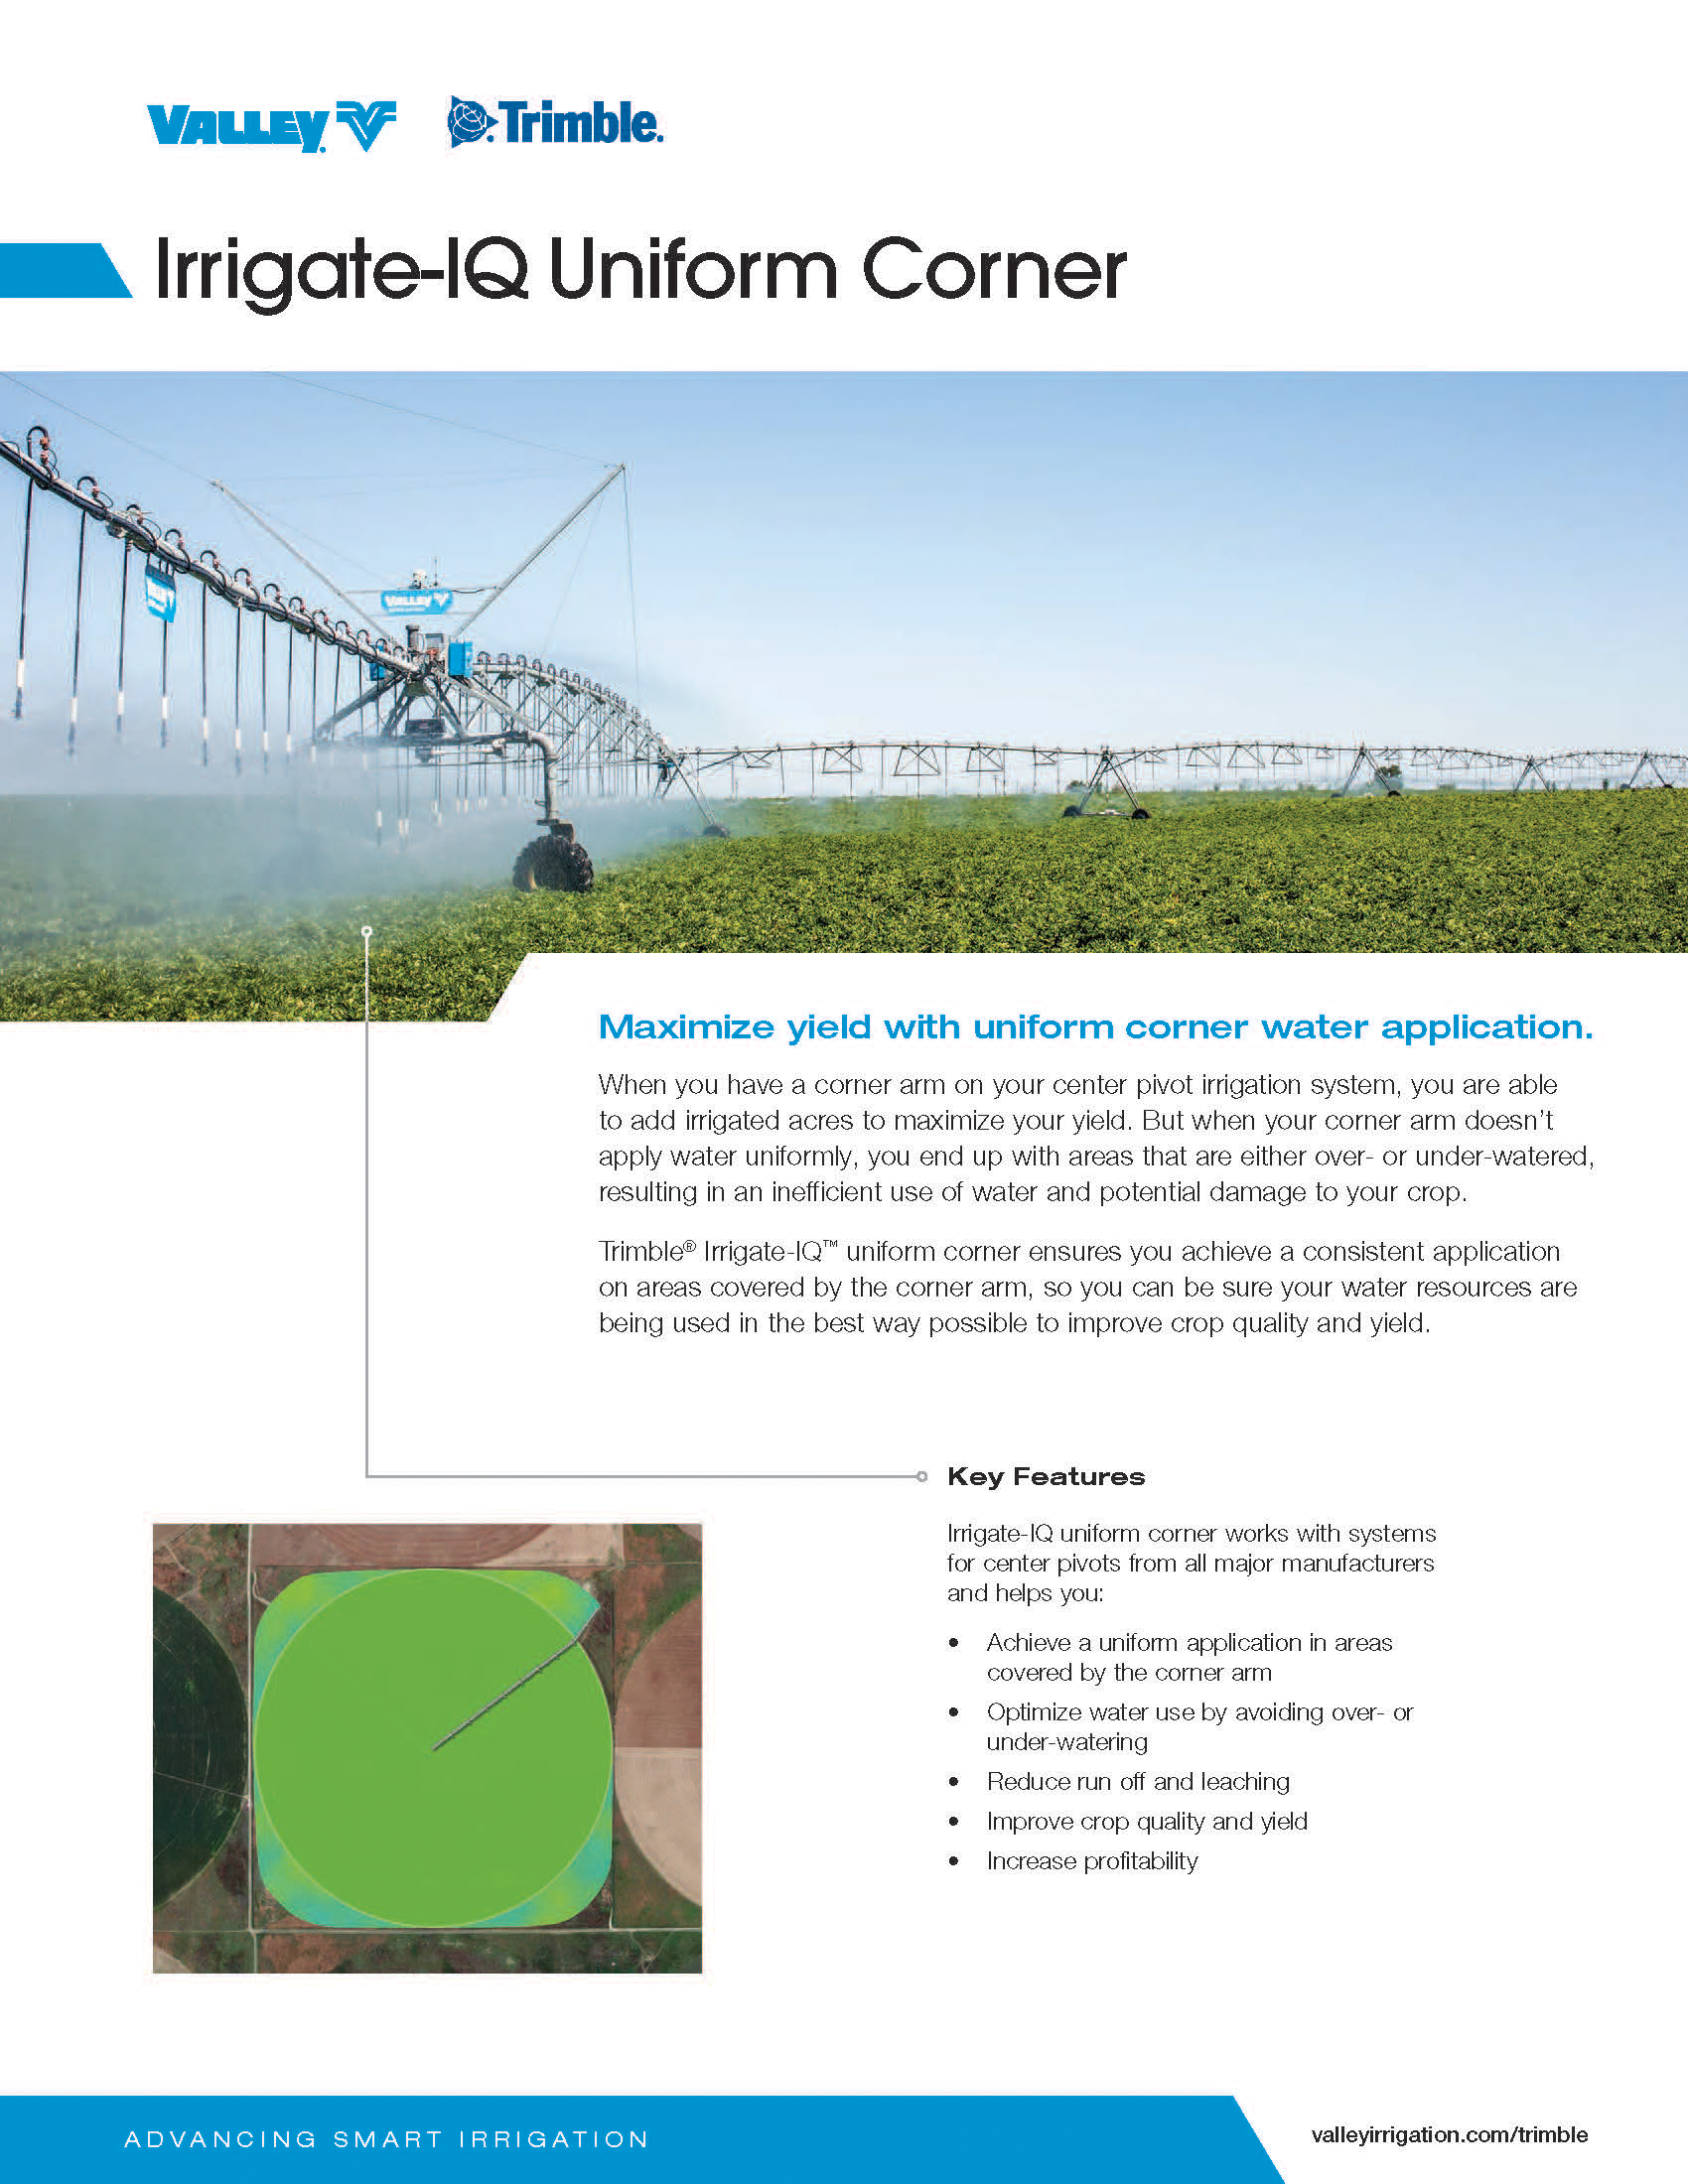 ad12420 0517 irrigate iq uniform corner_low_page_1 irrigation water application management valley irrigation wiring diagram for valley irrigation at panicattacktreatment.co